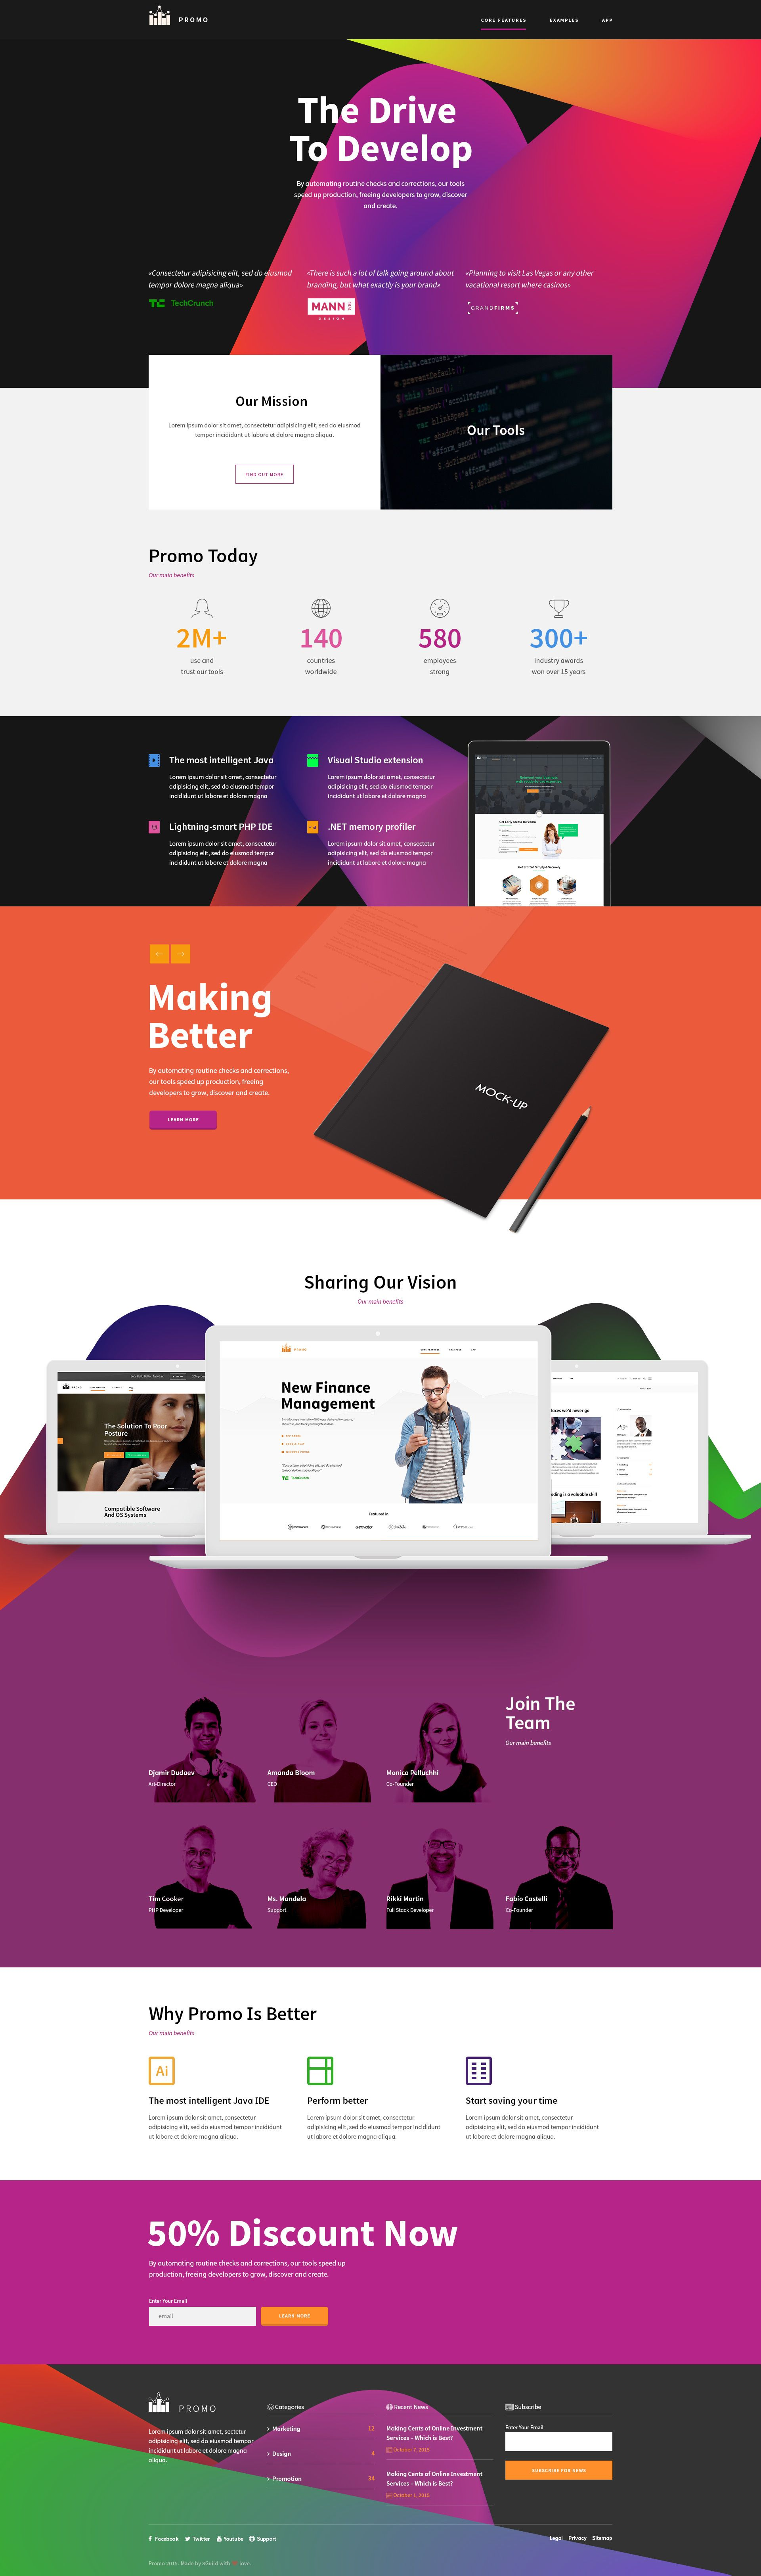 PROMO - Corporate Marketing PSD Template | All web | Pinterest ...